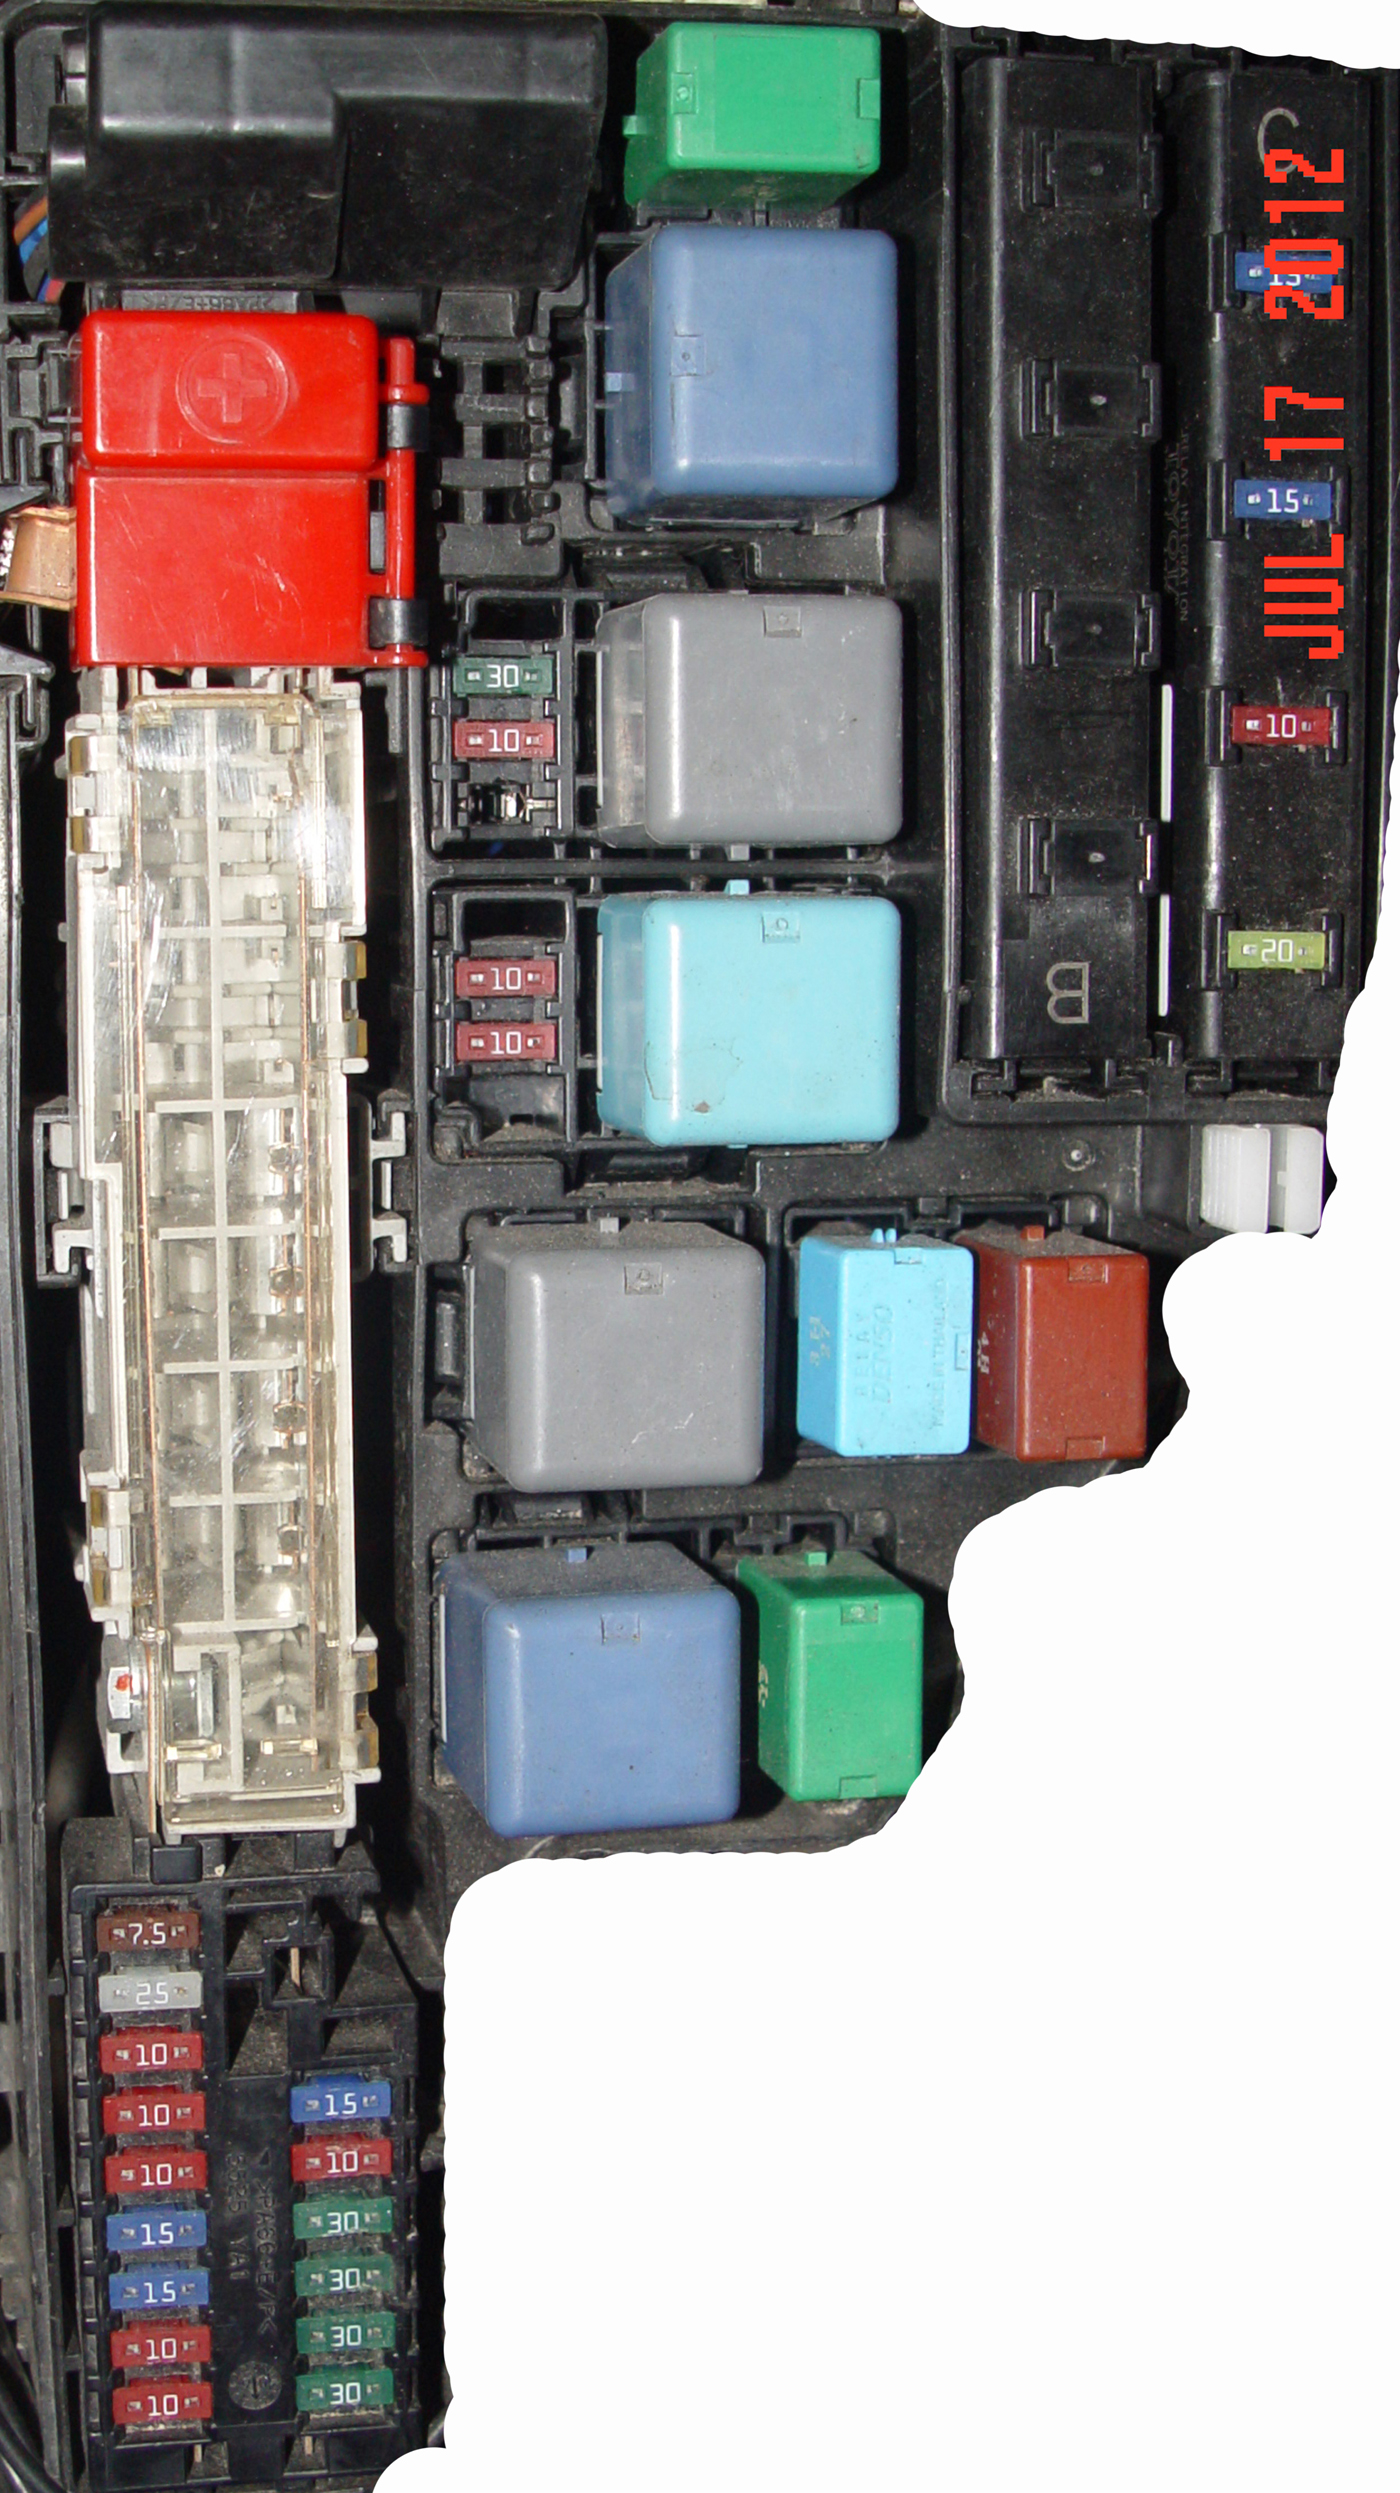 2004 toyota prius fuse box diagram iirGtIL 2008 toyota prius fuse box 2007 toyota prius fuse box \u2022 free toyota prius fuse box at eliteediting.co